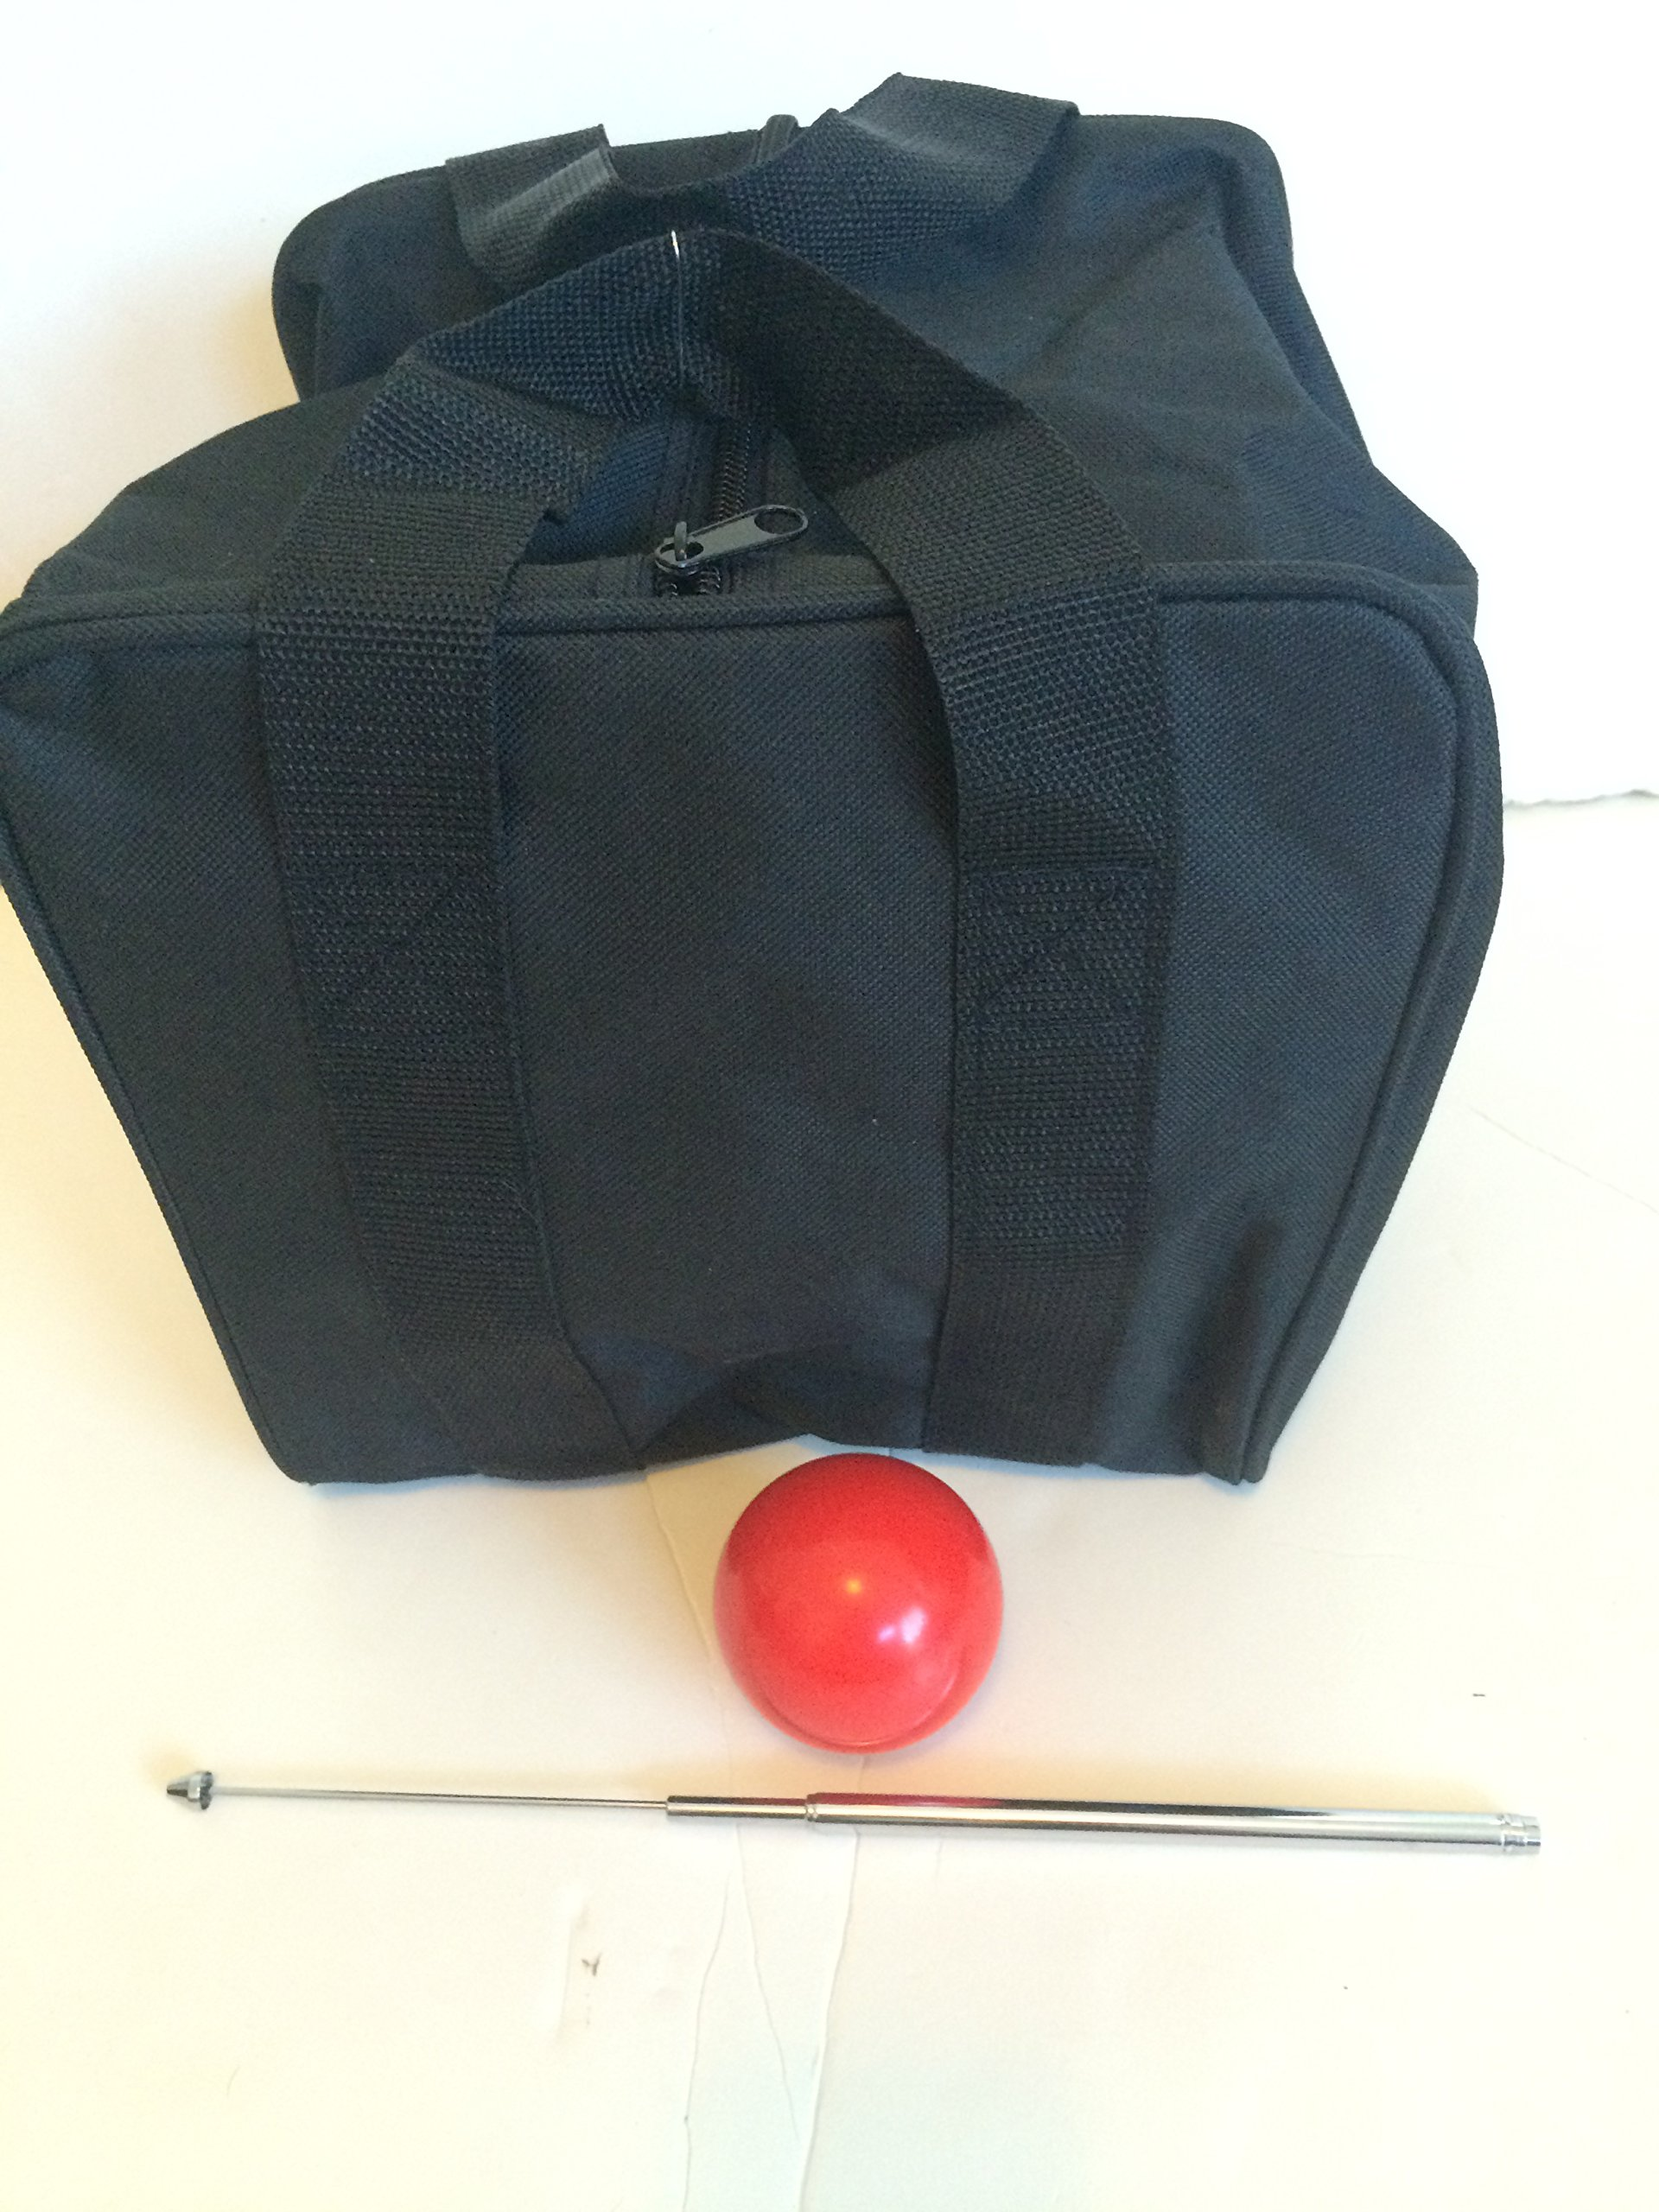 Unique Bocce Accessories Package - Extra Heavy Duty Nylon Bocce Bag (Black with Black Handles), red pallina, Extendable Measuring Device by BuyBocceBalls